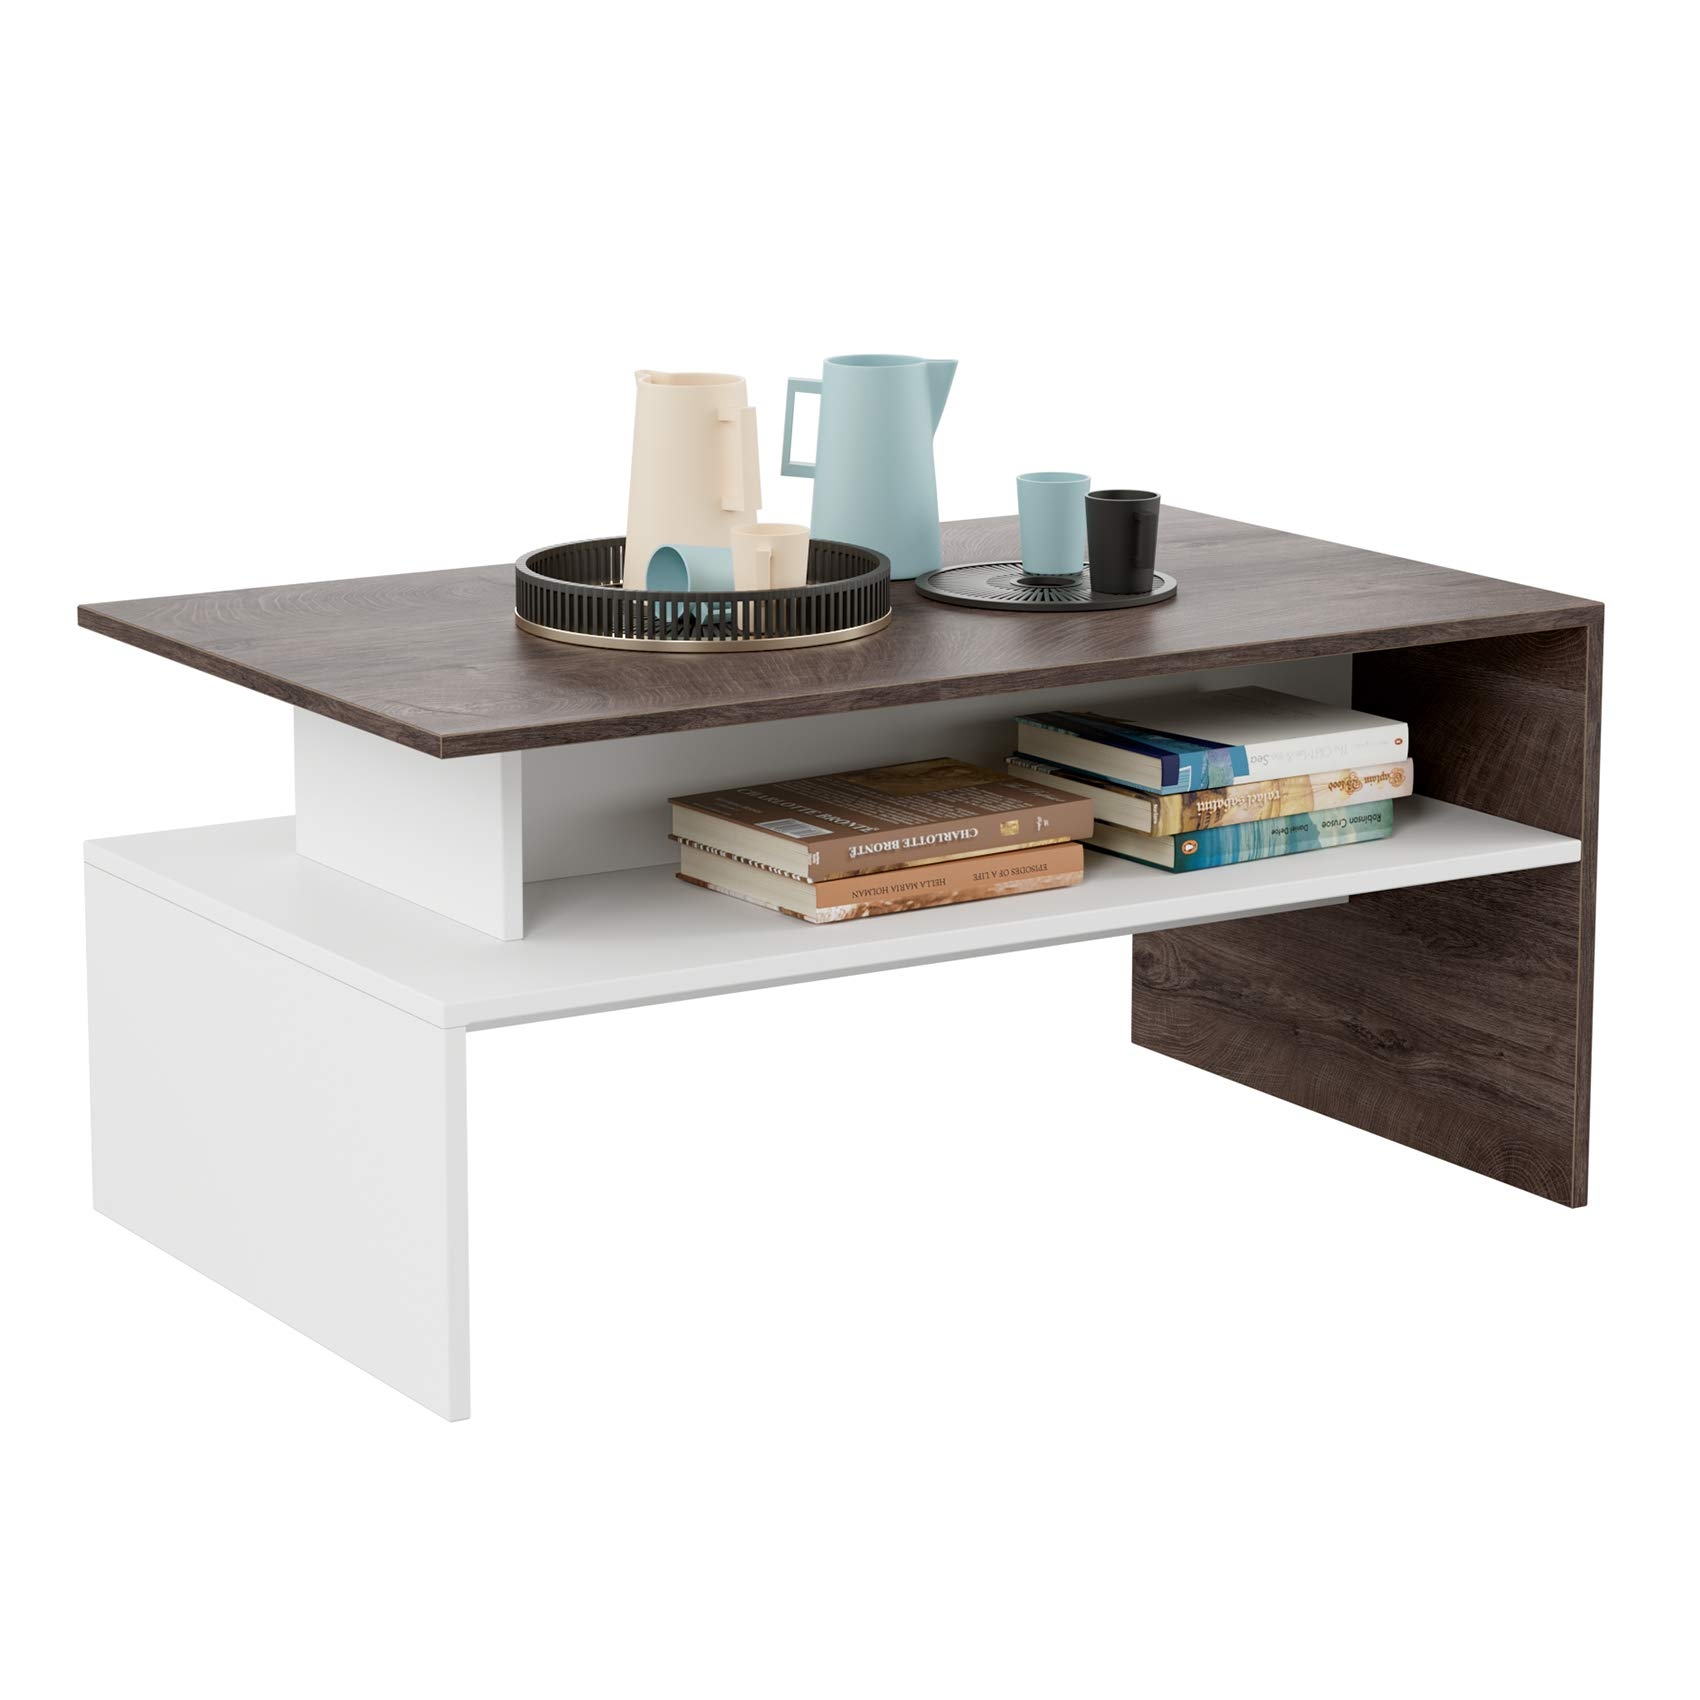 HOMFA Modern Console Table Coffee Table 2-tier Rectangular Storage Open Shelf Table for Living Room Sitting Room Home Furniture, Oak/White by Homfa